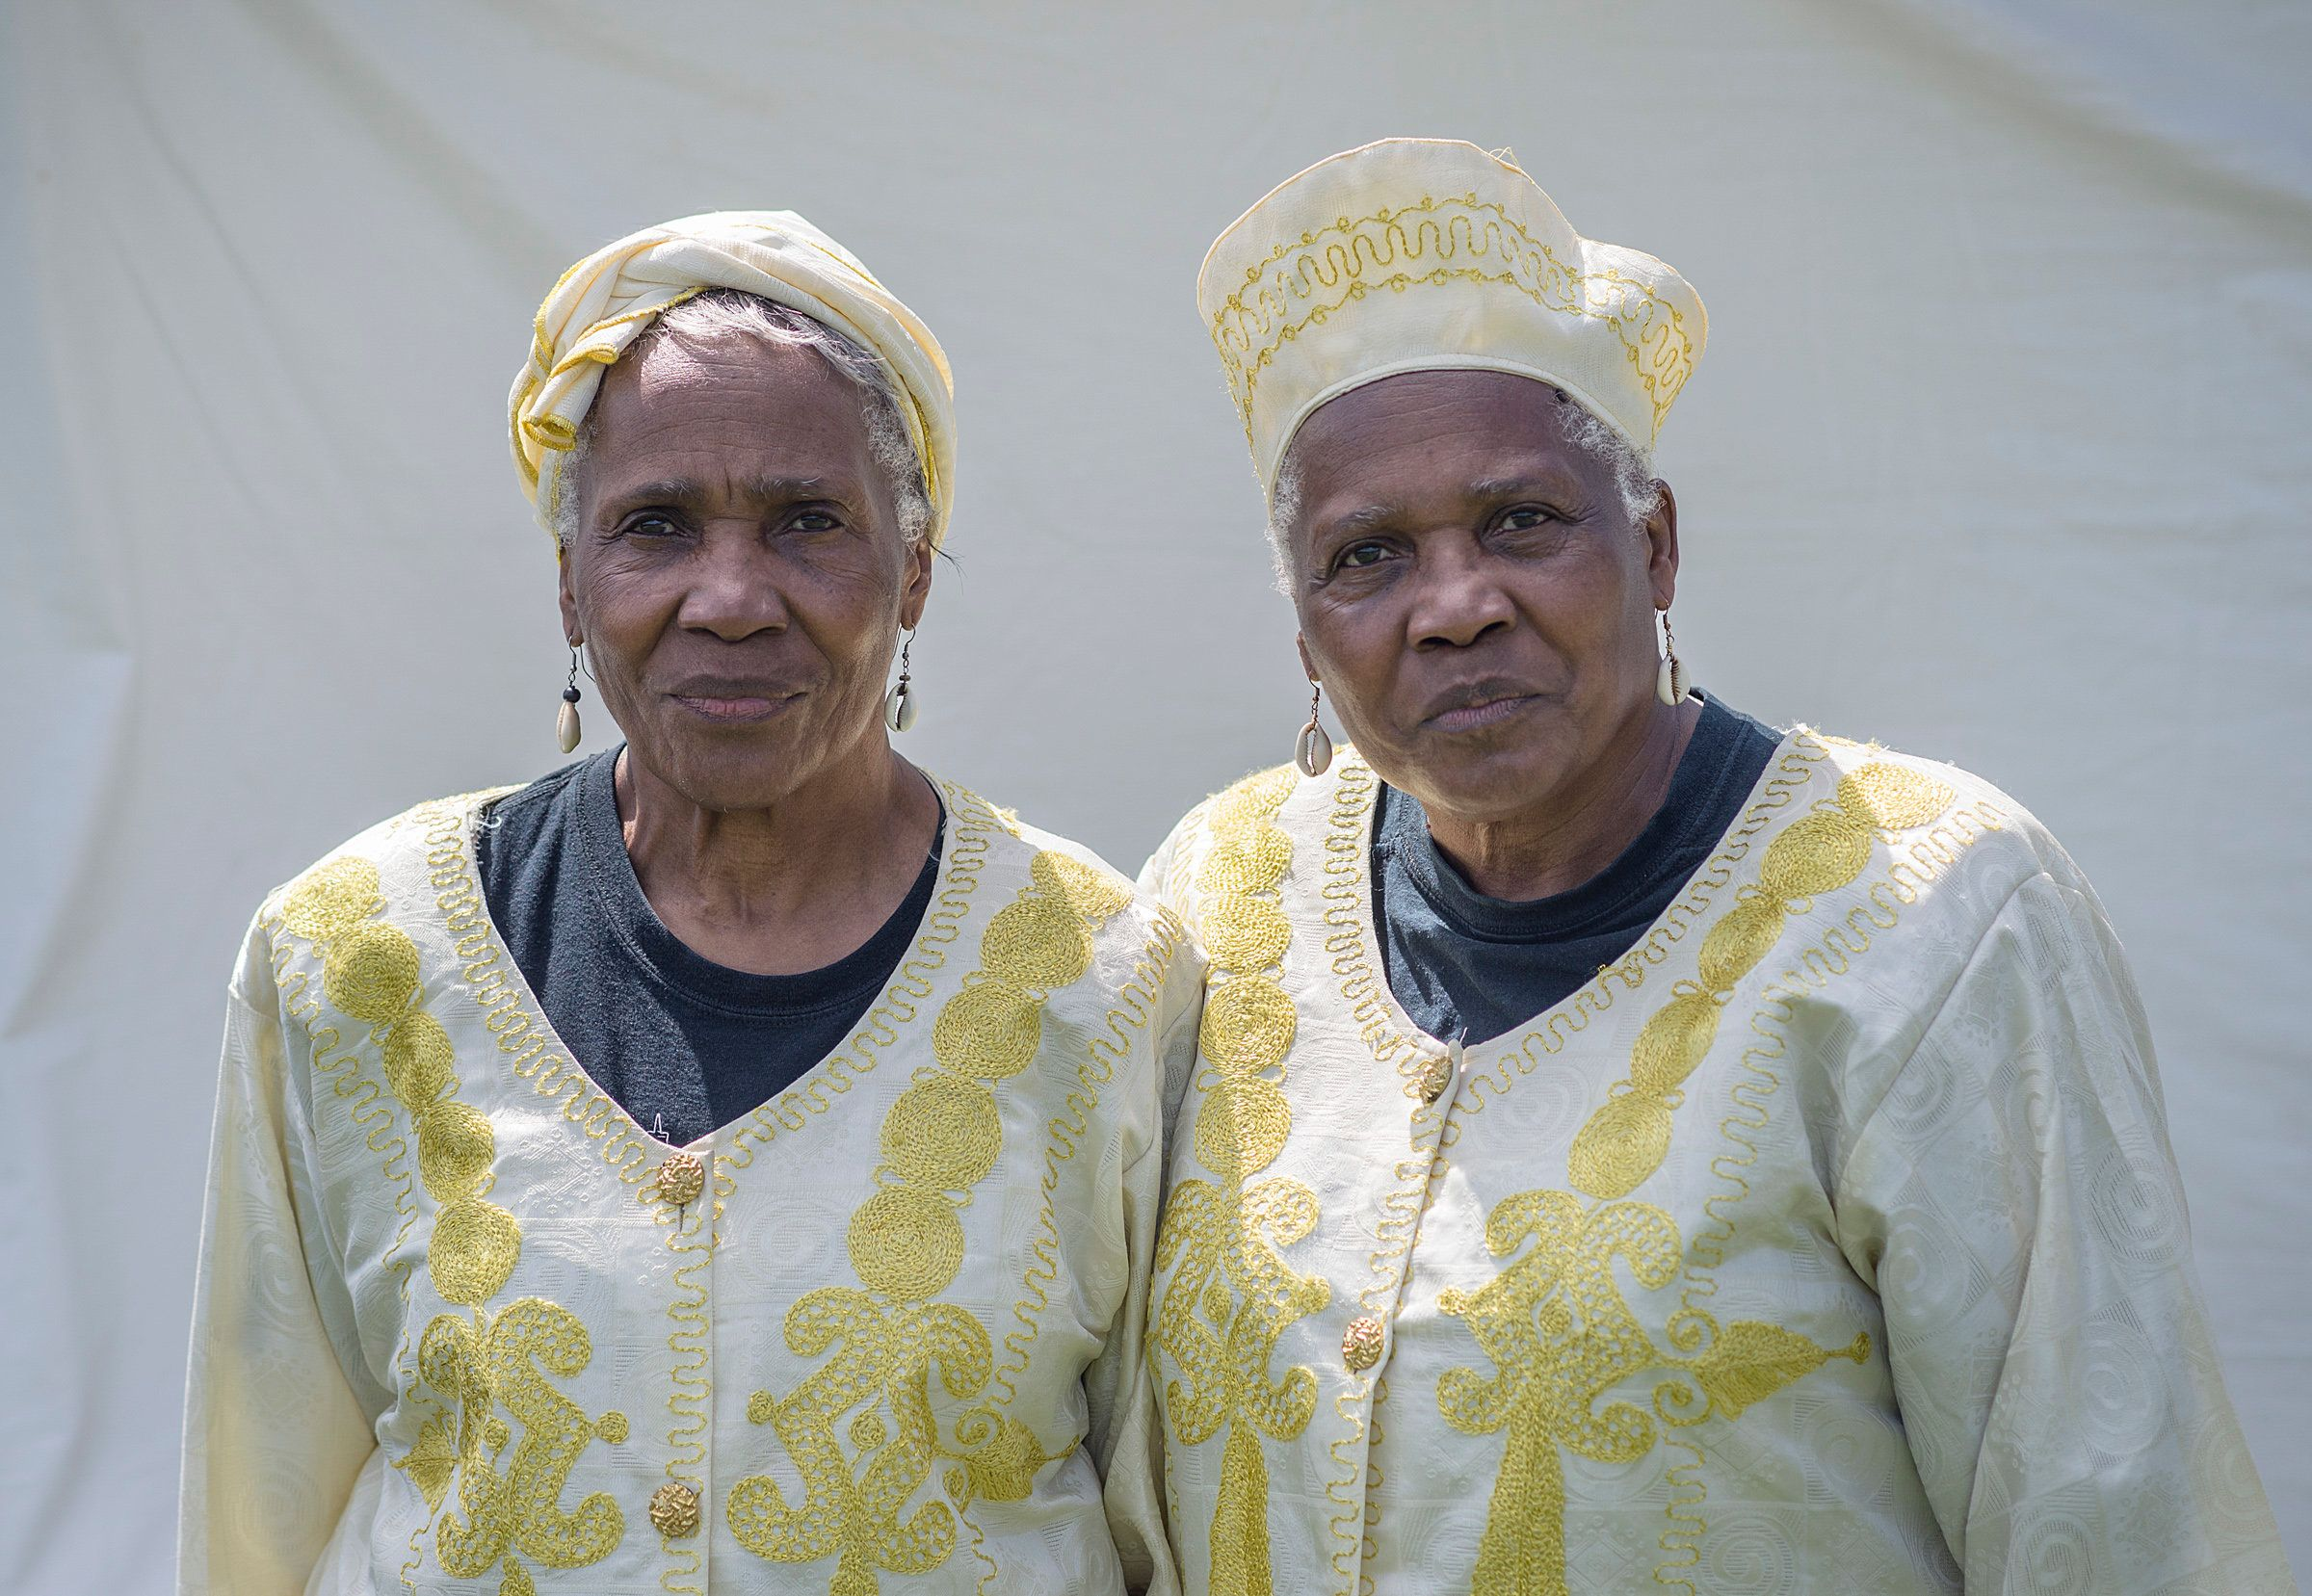 Arnette(left) and Anette Averyhave their picture taken at the Twinsburg Twins Days Festival...